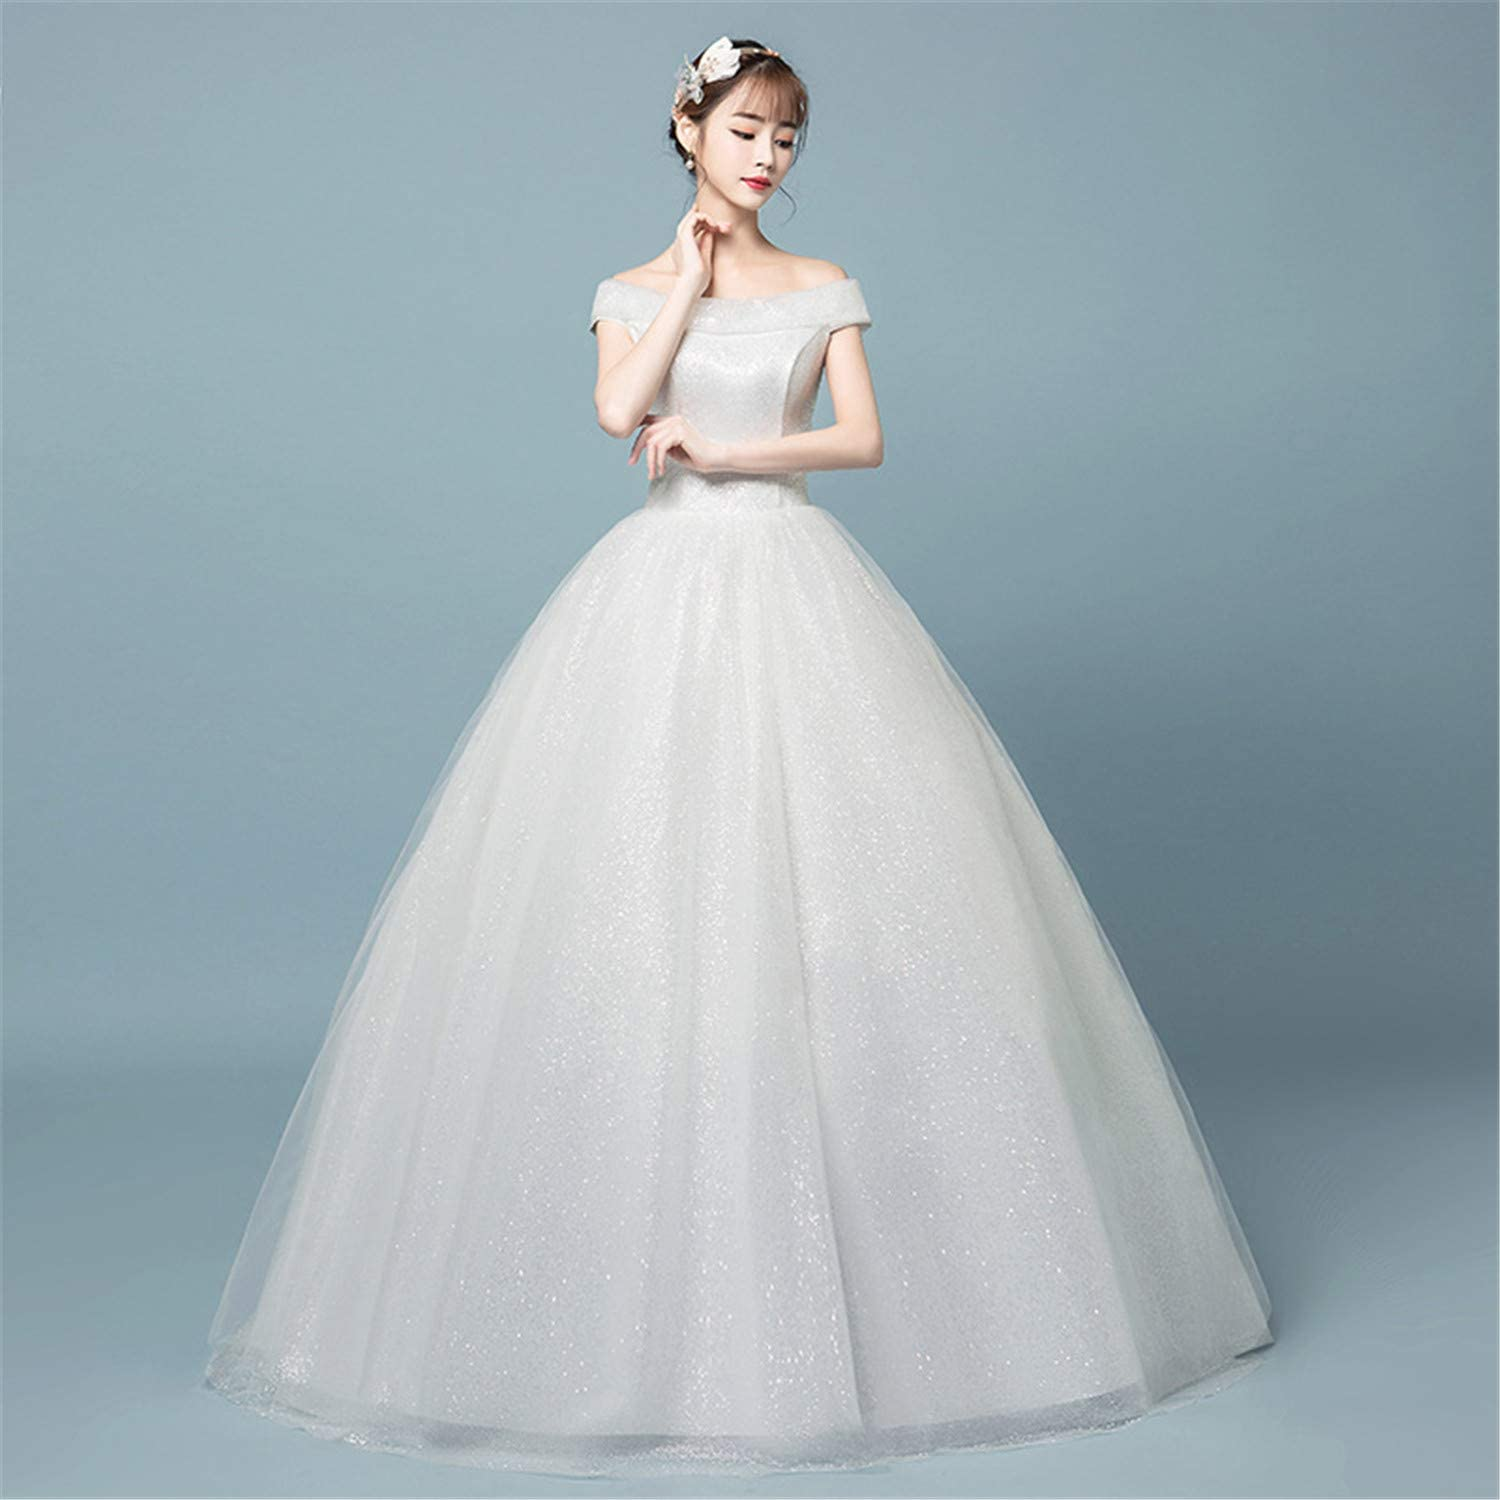 Wedding Dress Studio Lace Fluffy Skirt Princess Dress White Pleated Elegant Beautiful Evening Party